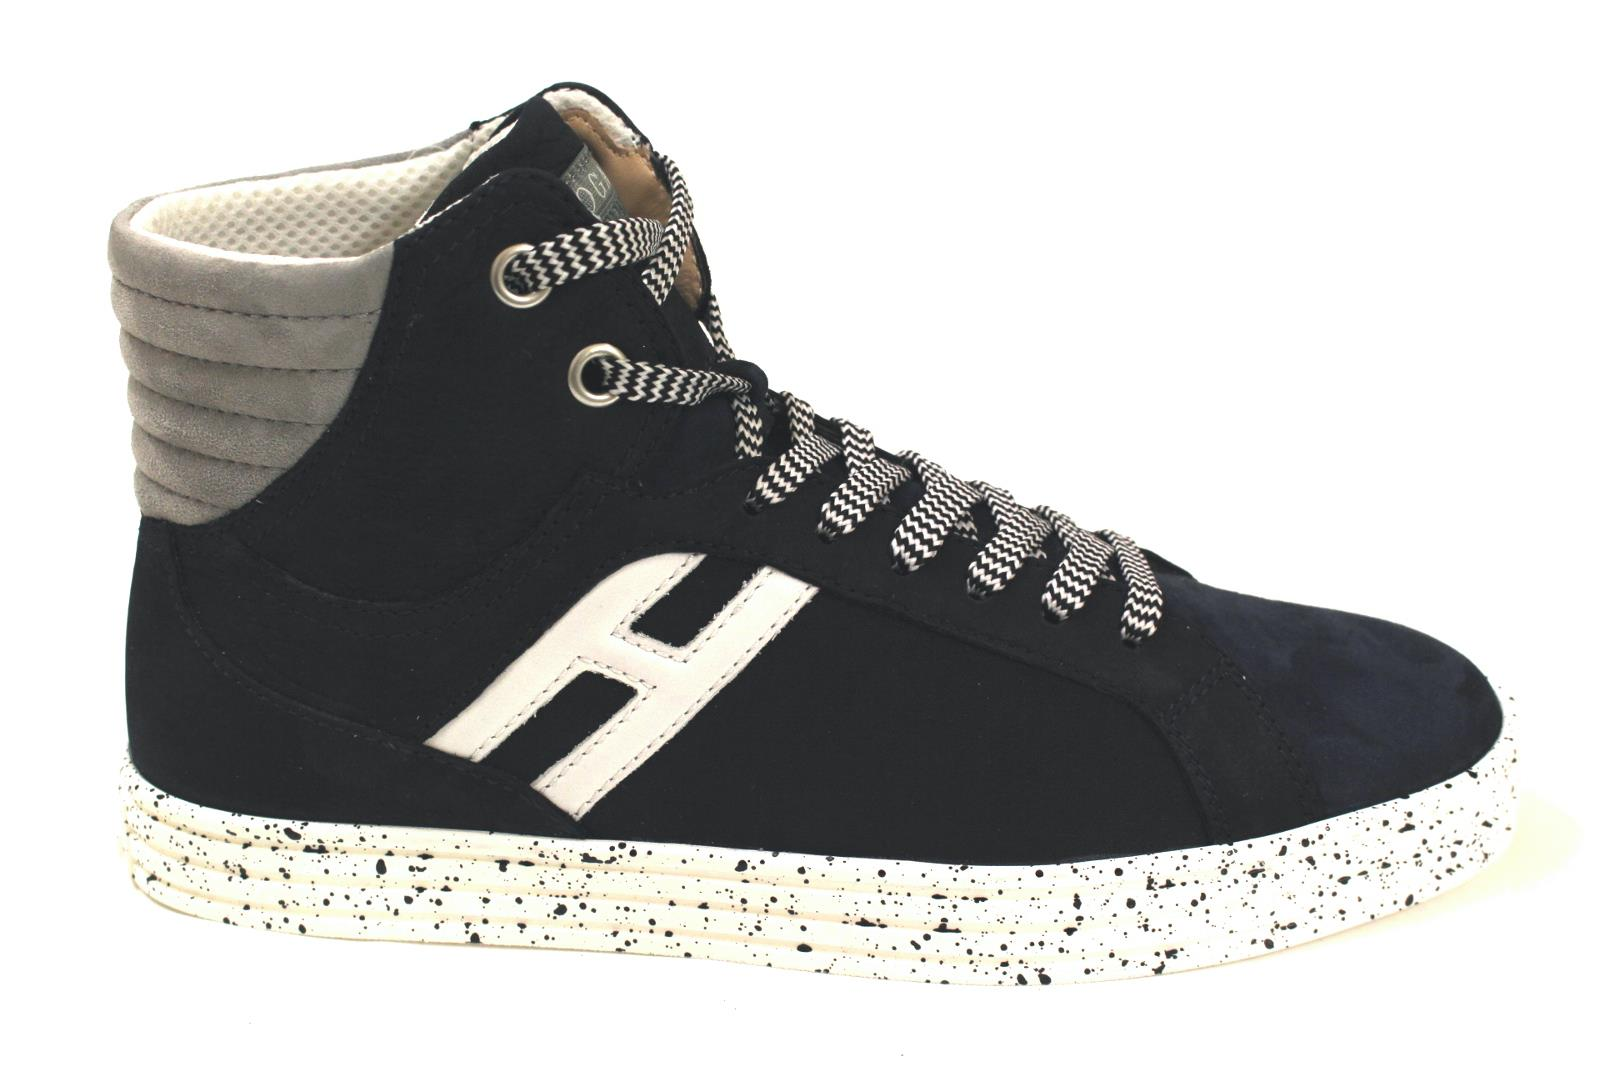 Hogan Rebel Hogan Rebel Sneakers Hogan Shop On Line Stivali Hogan